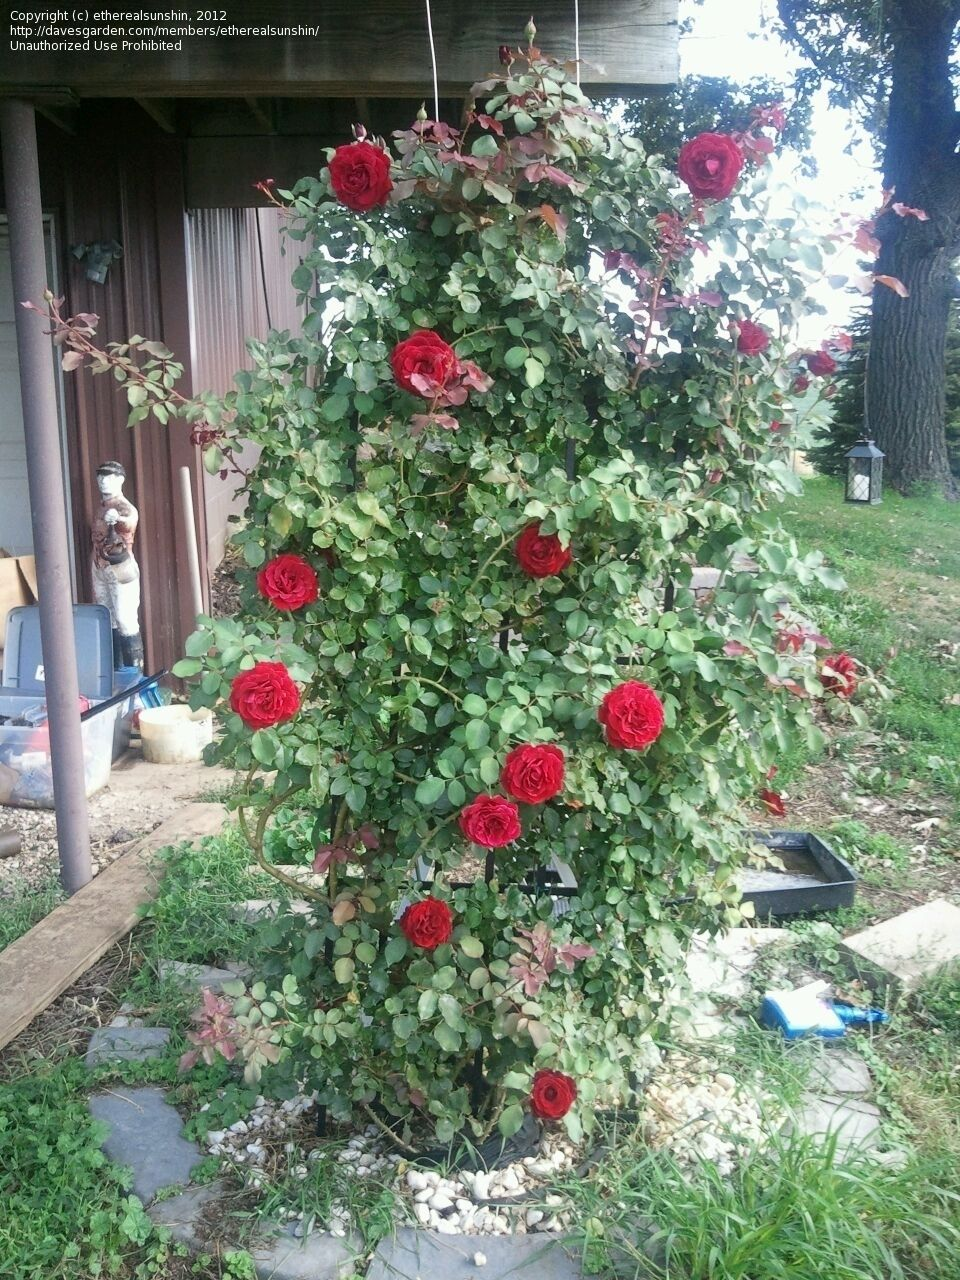 Ho/how to take care of climbing roses for winter - Full Size Picture Of Climber Hybrid Tea Large Flowered Climbing Rose Don